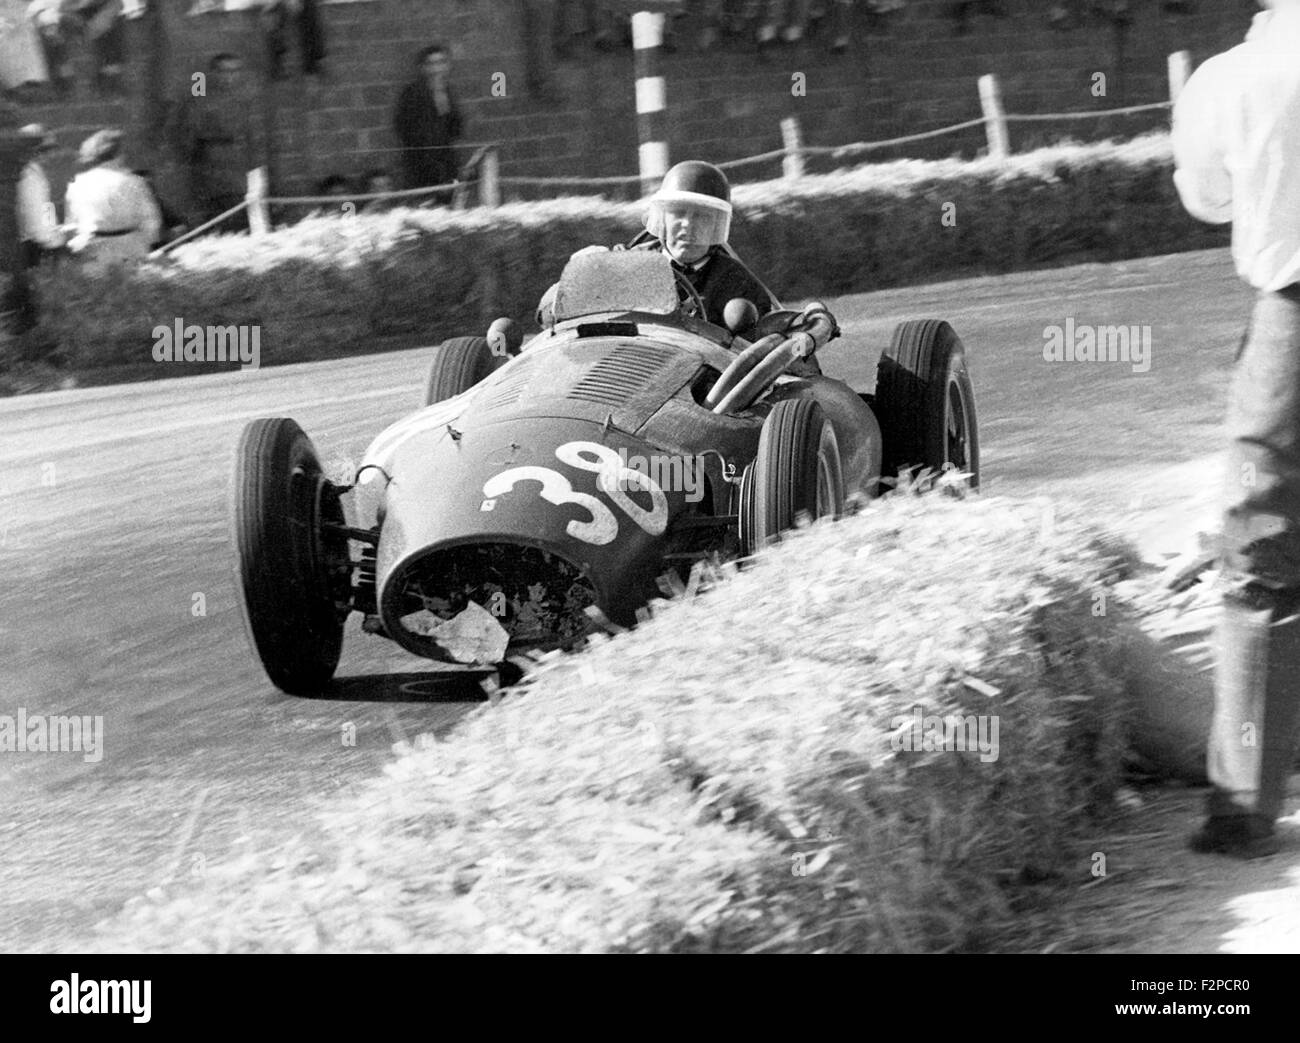 Mike Hawthorn in a Ferrari Squalo 555 in the Spanish GP in Pedralbes 1954 - Stock Image